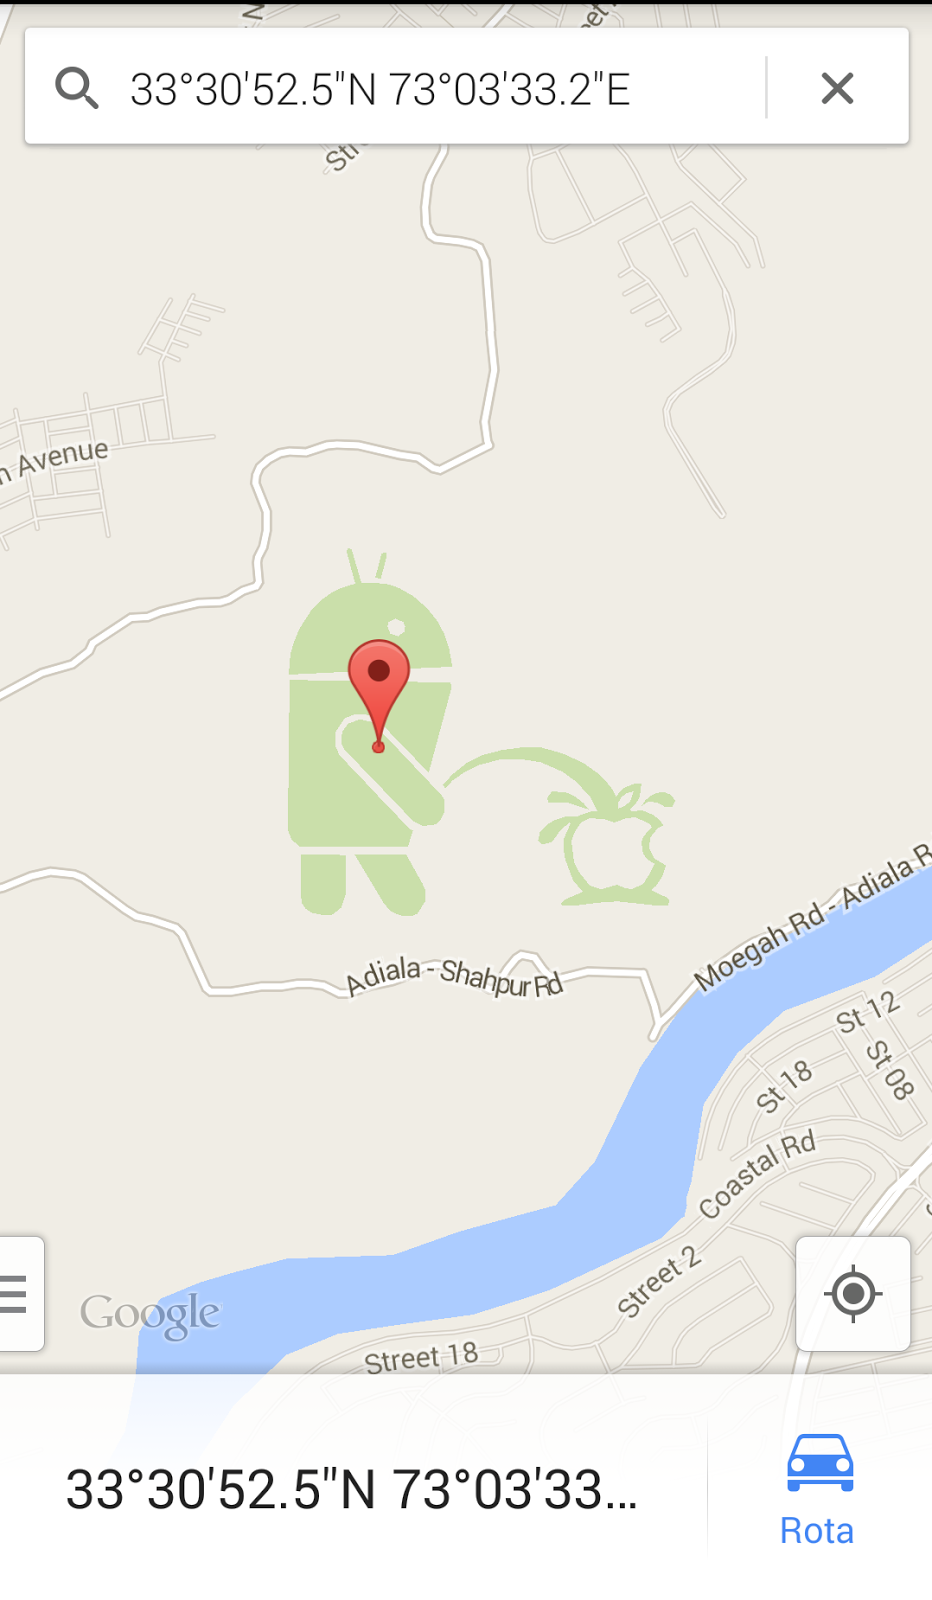 Google Maps Android Apple Logosuna Ne Yaptı?